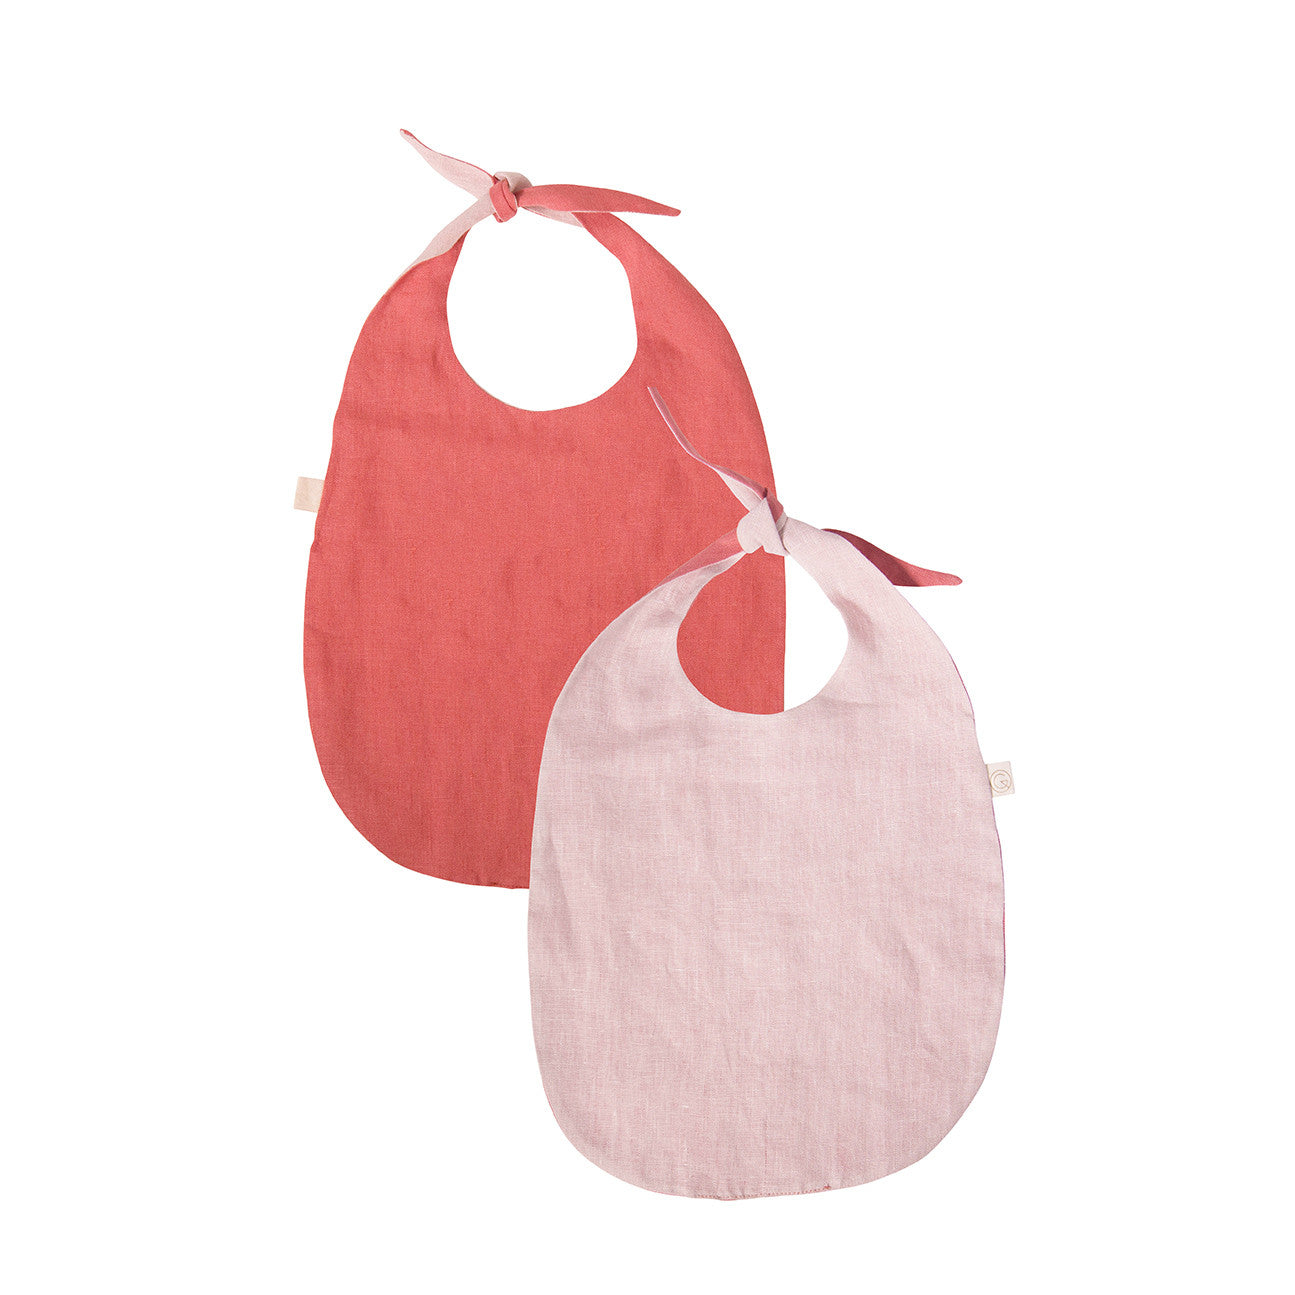 Double-Sided Bib  - LINEN (Red and Pink)